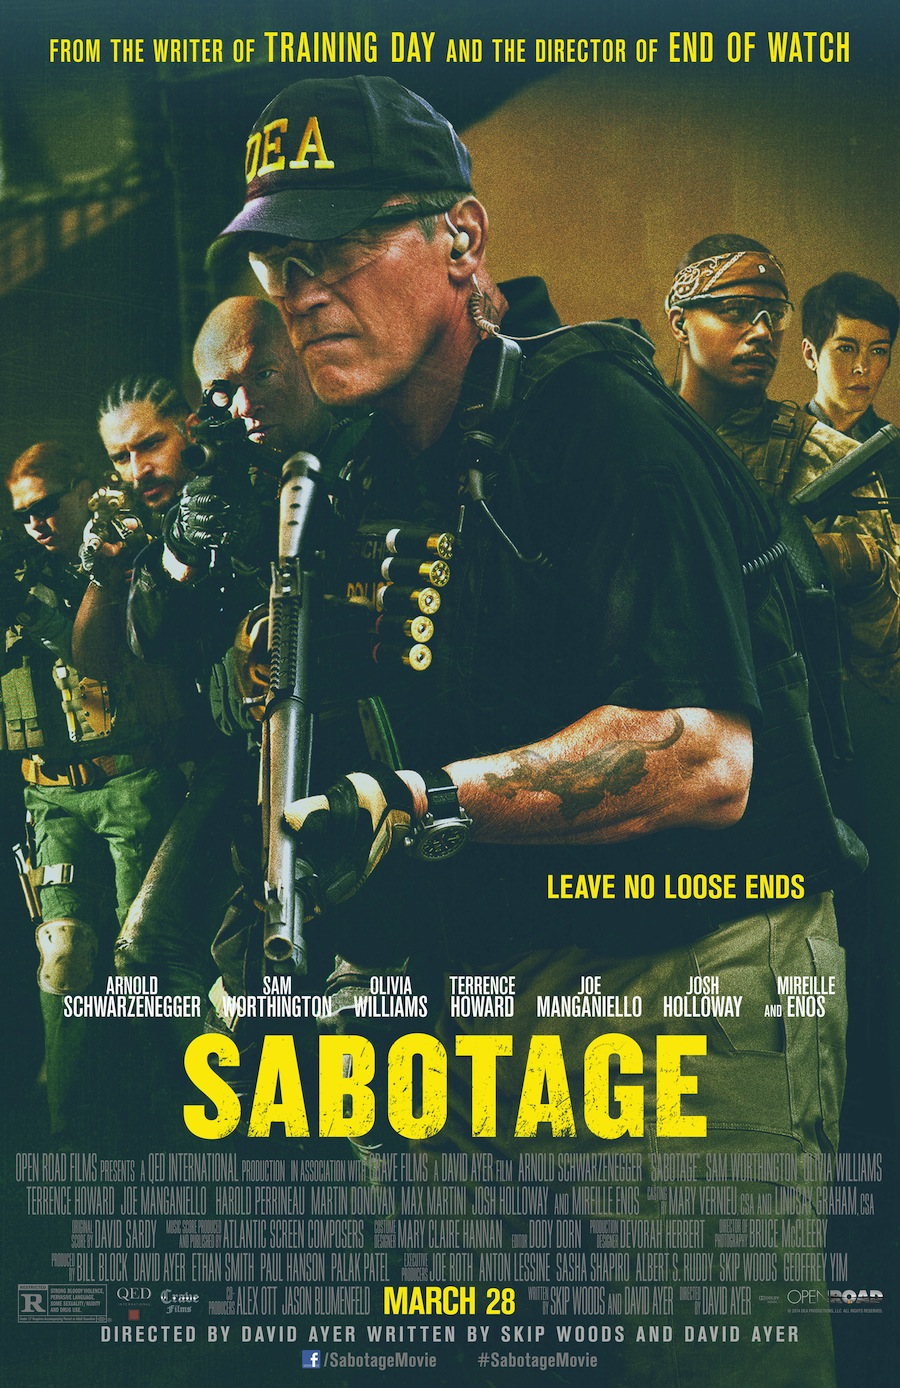 Sabotage Poster March28 Red Band Trailer for Sabotage Shows Arnold Schwarzenegger Kicking Butt